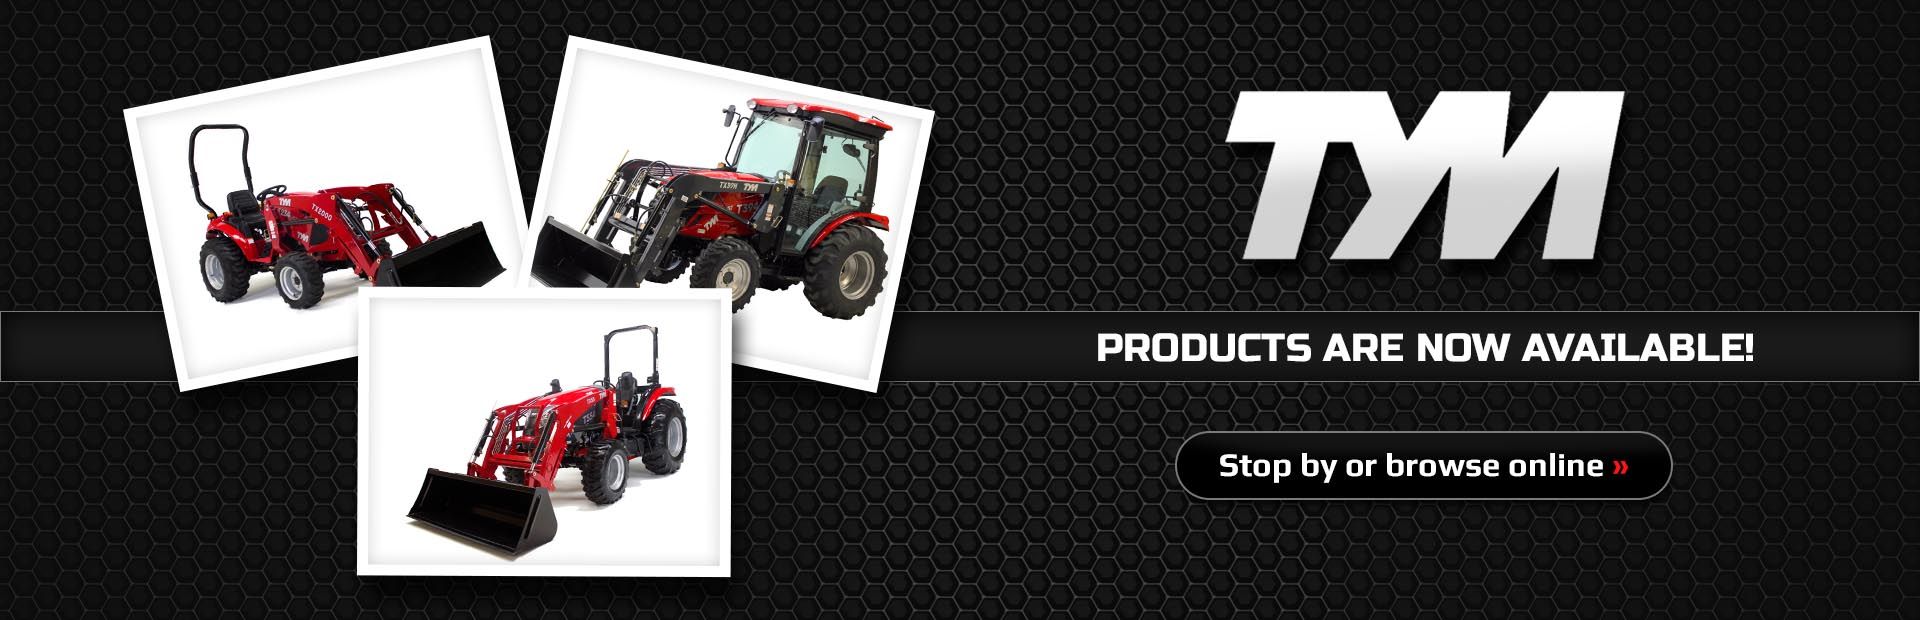 TYM products are now available! Stop by or click here to browse online.